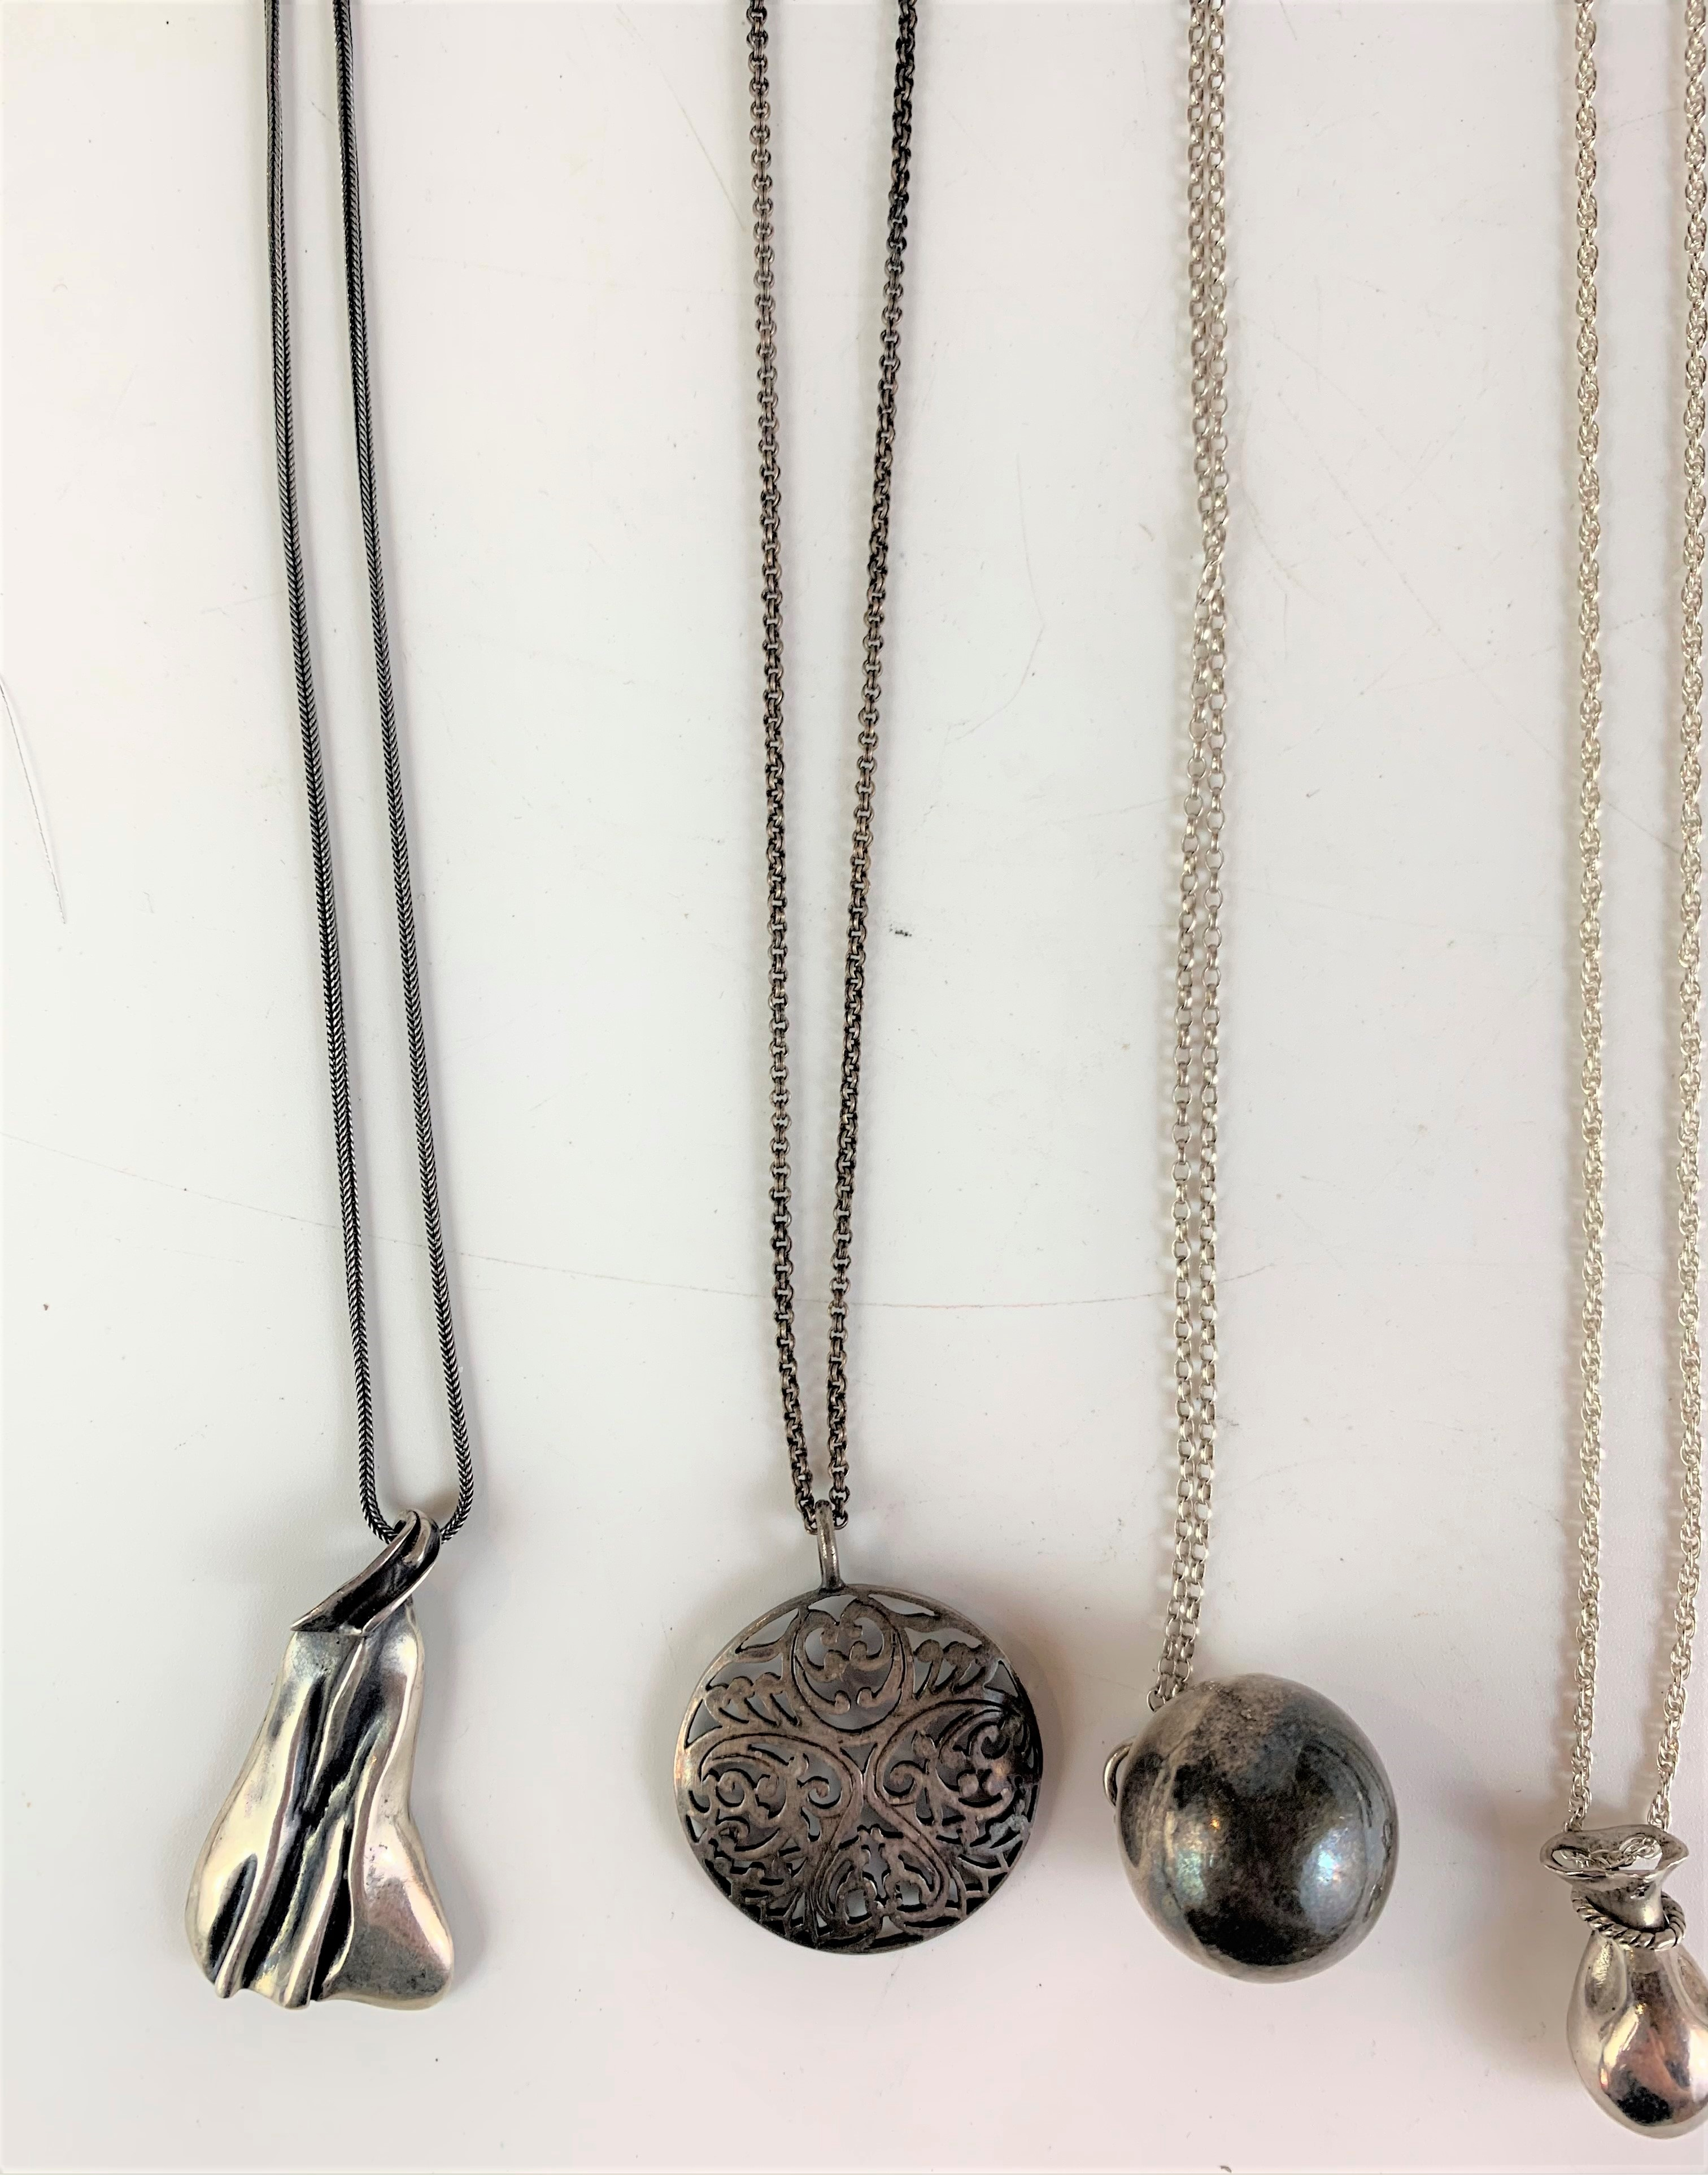 7 assorted silver necklaces and pendants, total w: 2.4 ozt - Image 3 of 6